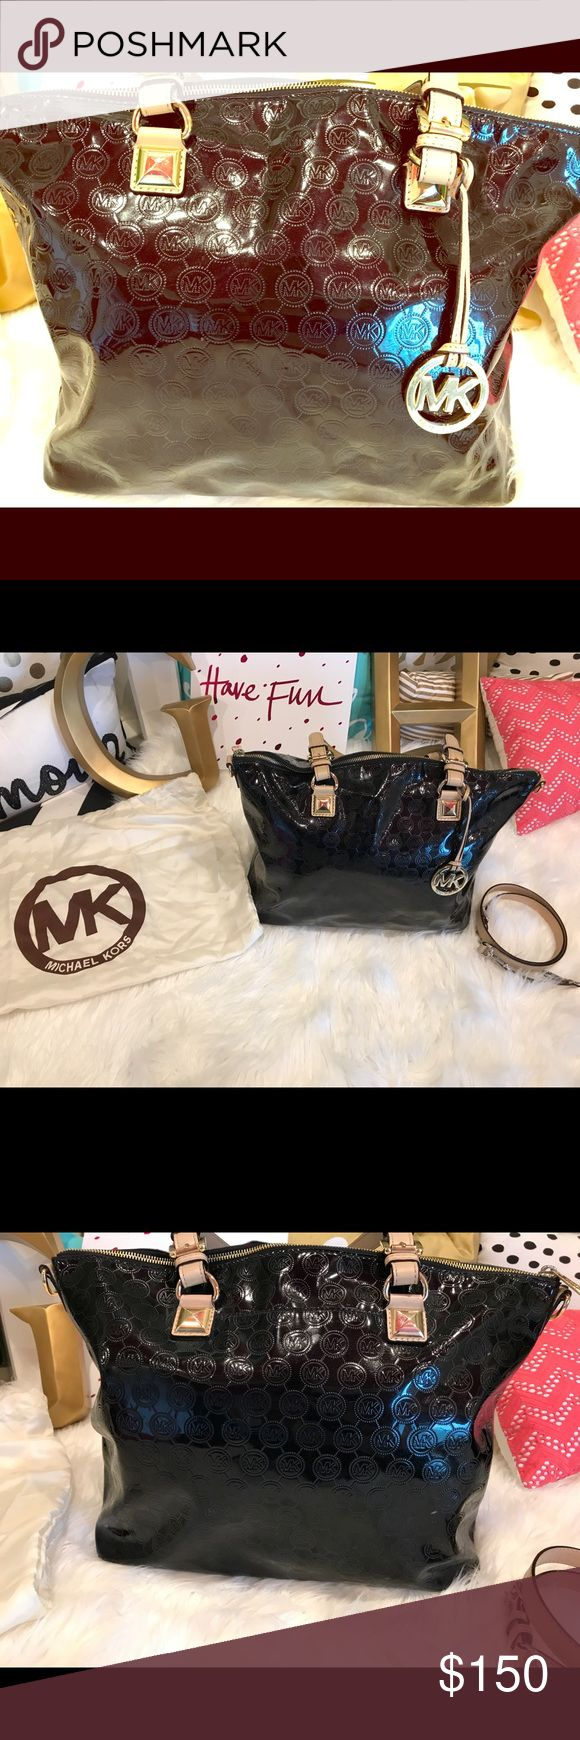 Michael Kors handbag This is a patented leather black authentic Michael Kors handbag. Michael Kors Black Signature Patent Leather Gloss Large Jet Set Tote. Like new, barely used! Michael Kors Bags Shoulder Bags